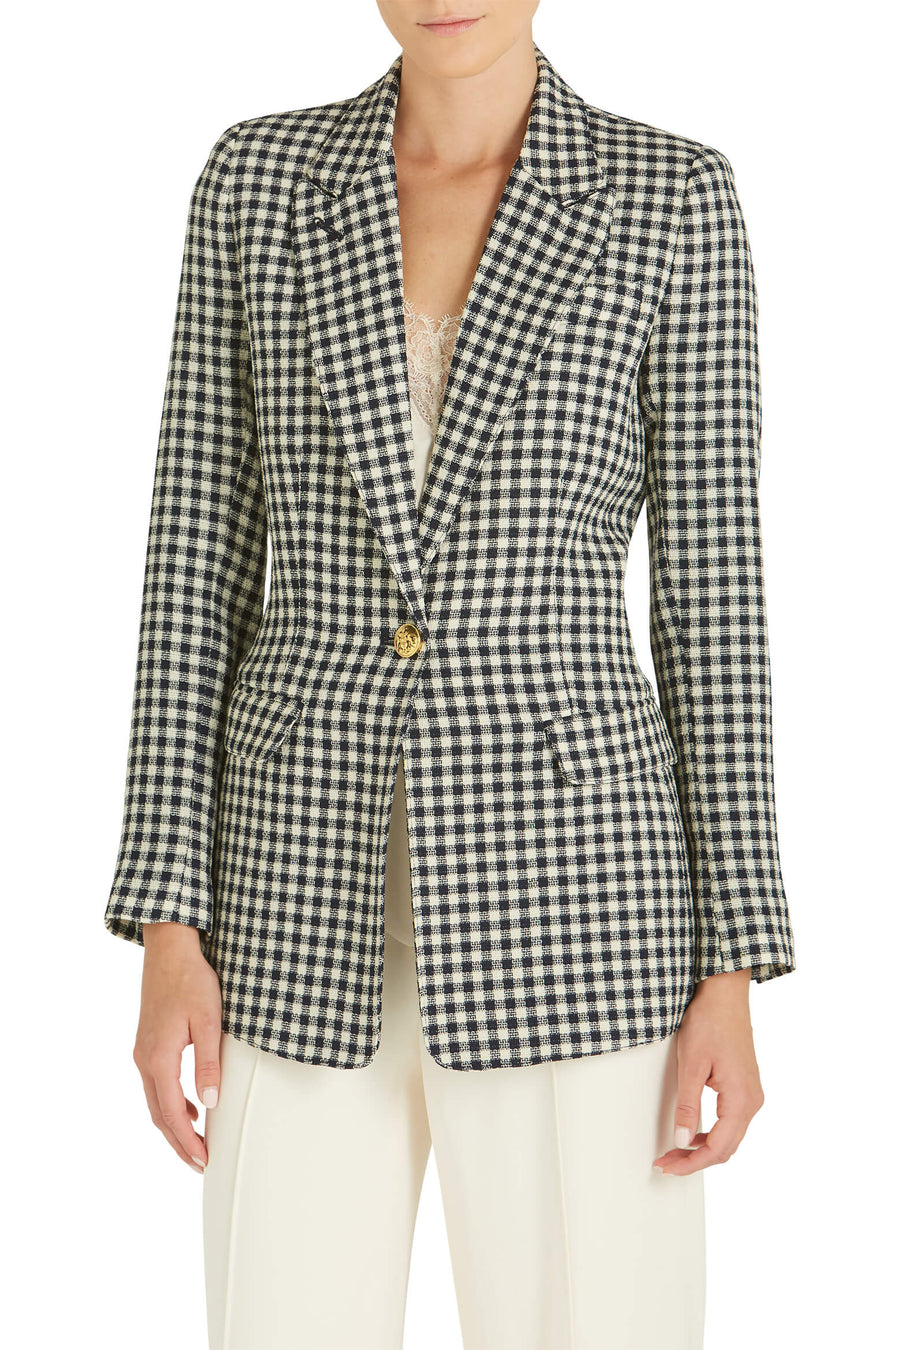 Smythe Tailored Blazer Navy Check from The New Trend